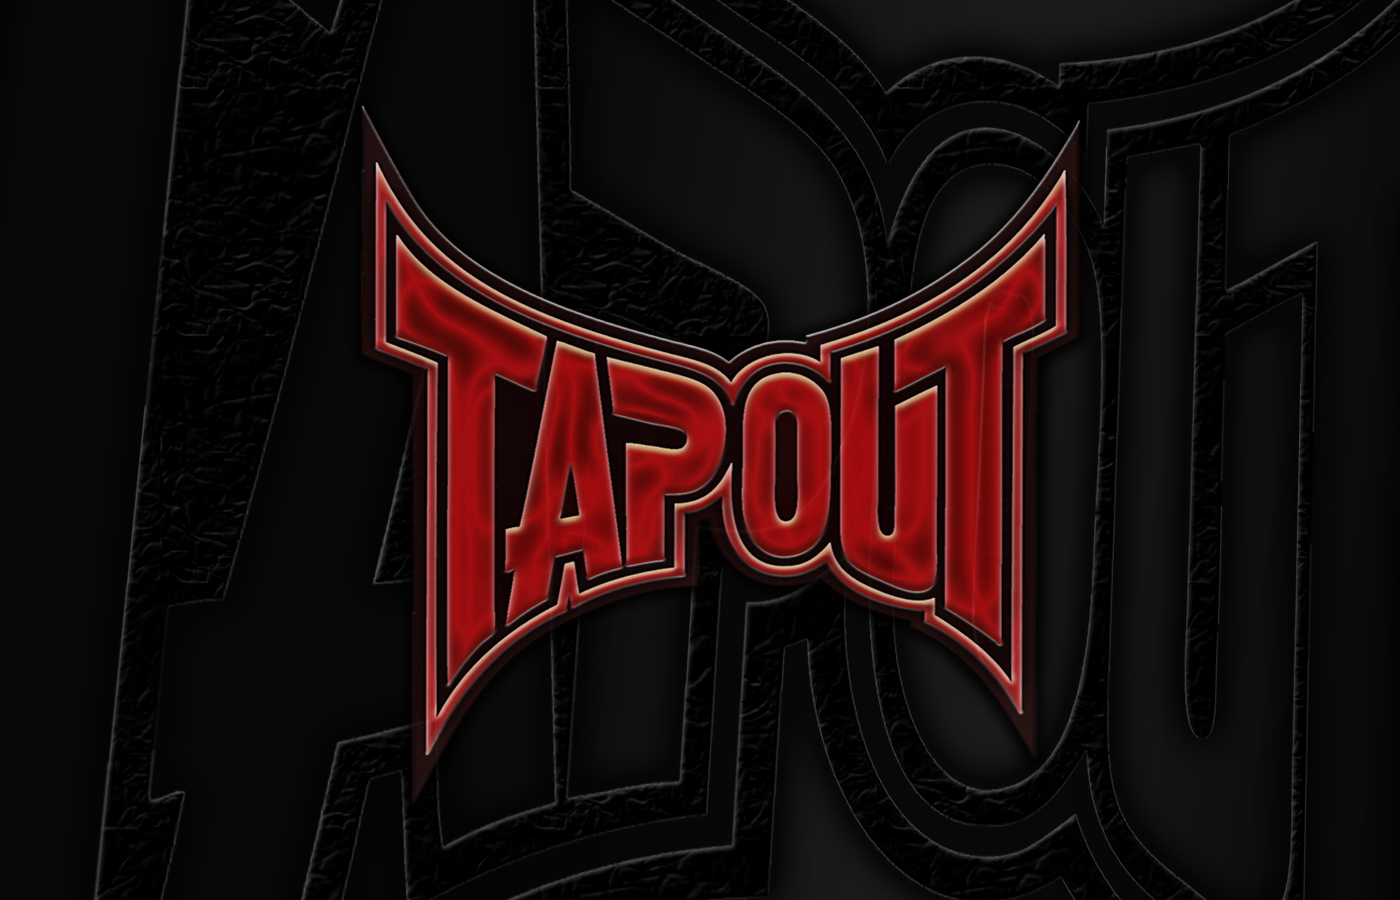 tapout logo red mma - photo #16